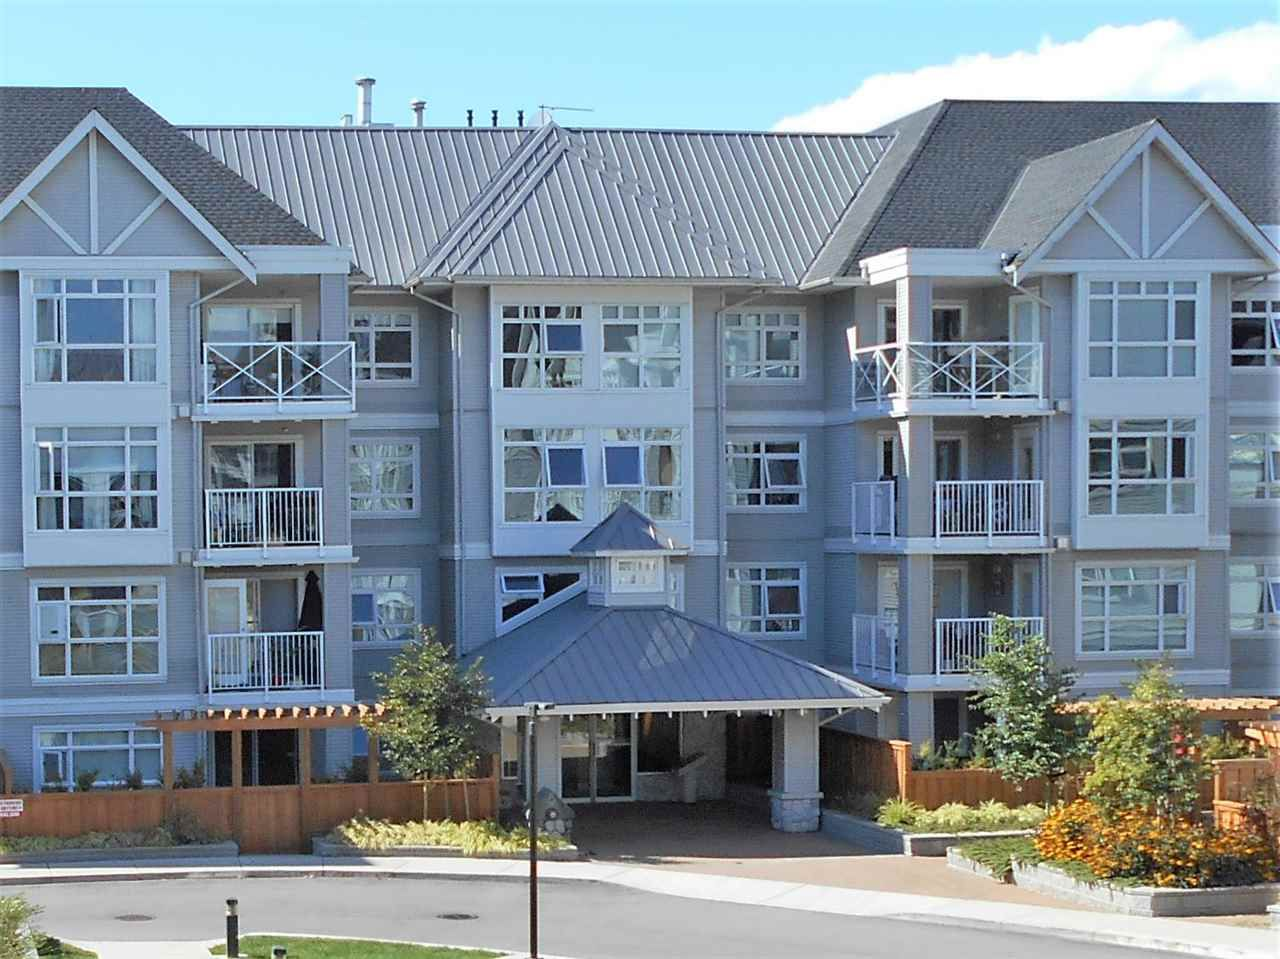 Main Photo: 404 3136 ST JOHNS STREET in : Port Moody Centre Condo for sale (Port Moody)  : MLS®# R2205742